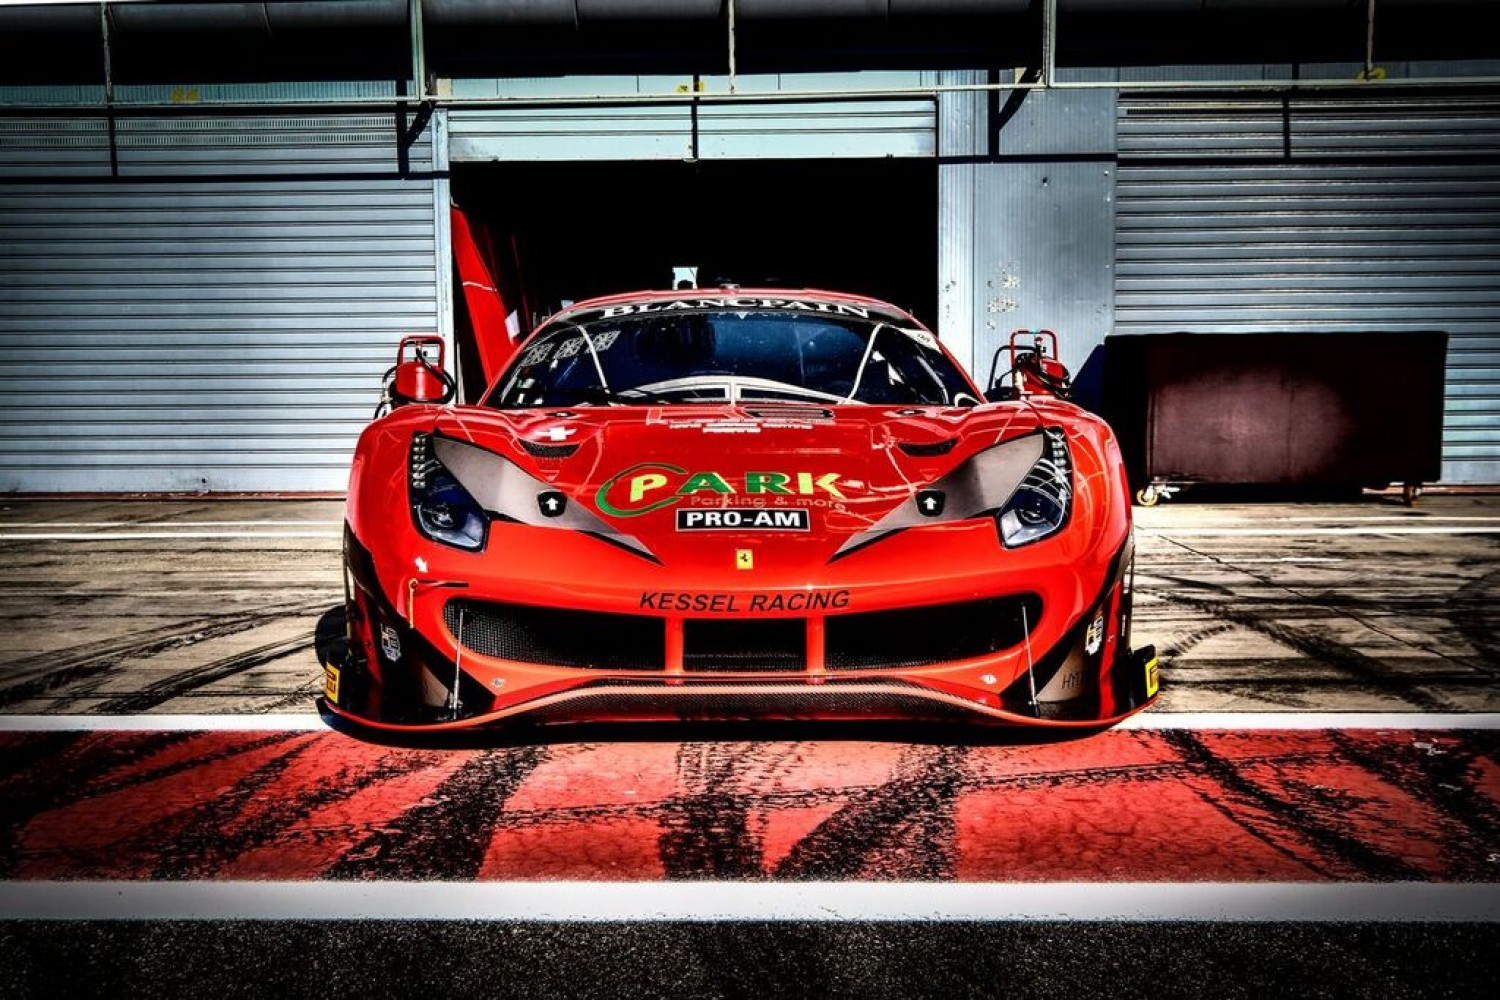 In Focus: Local favourite Ferrari brings strong representation to Monza